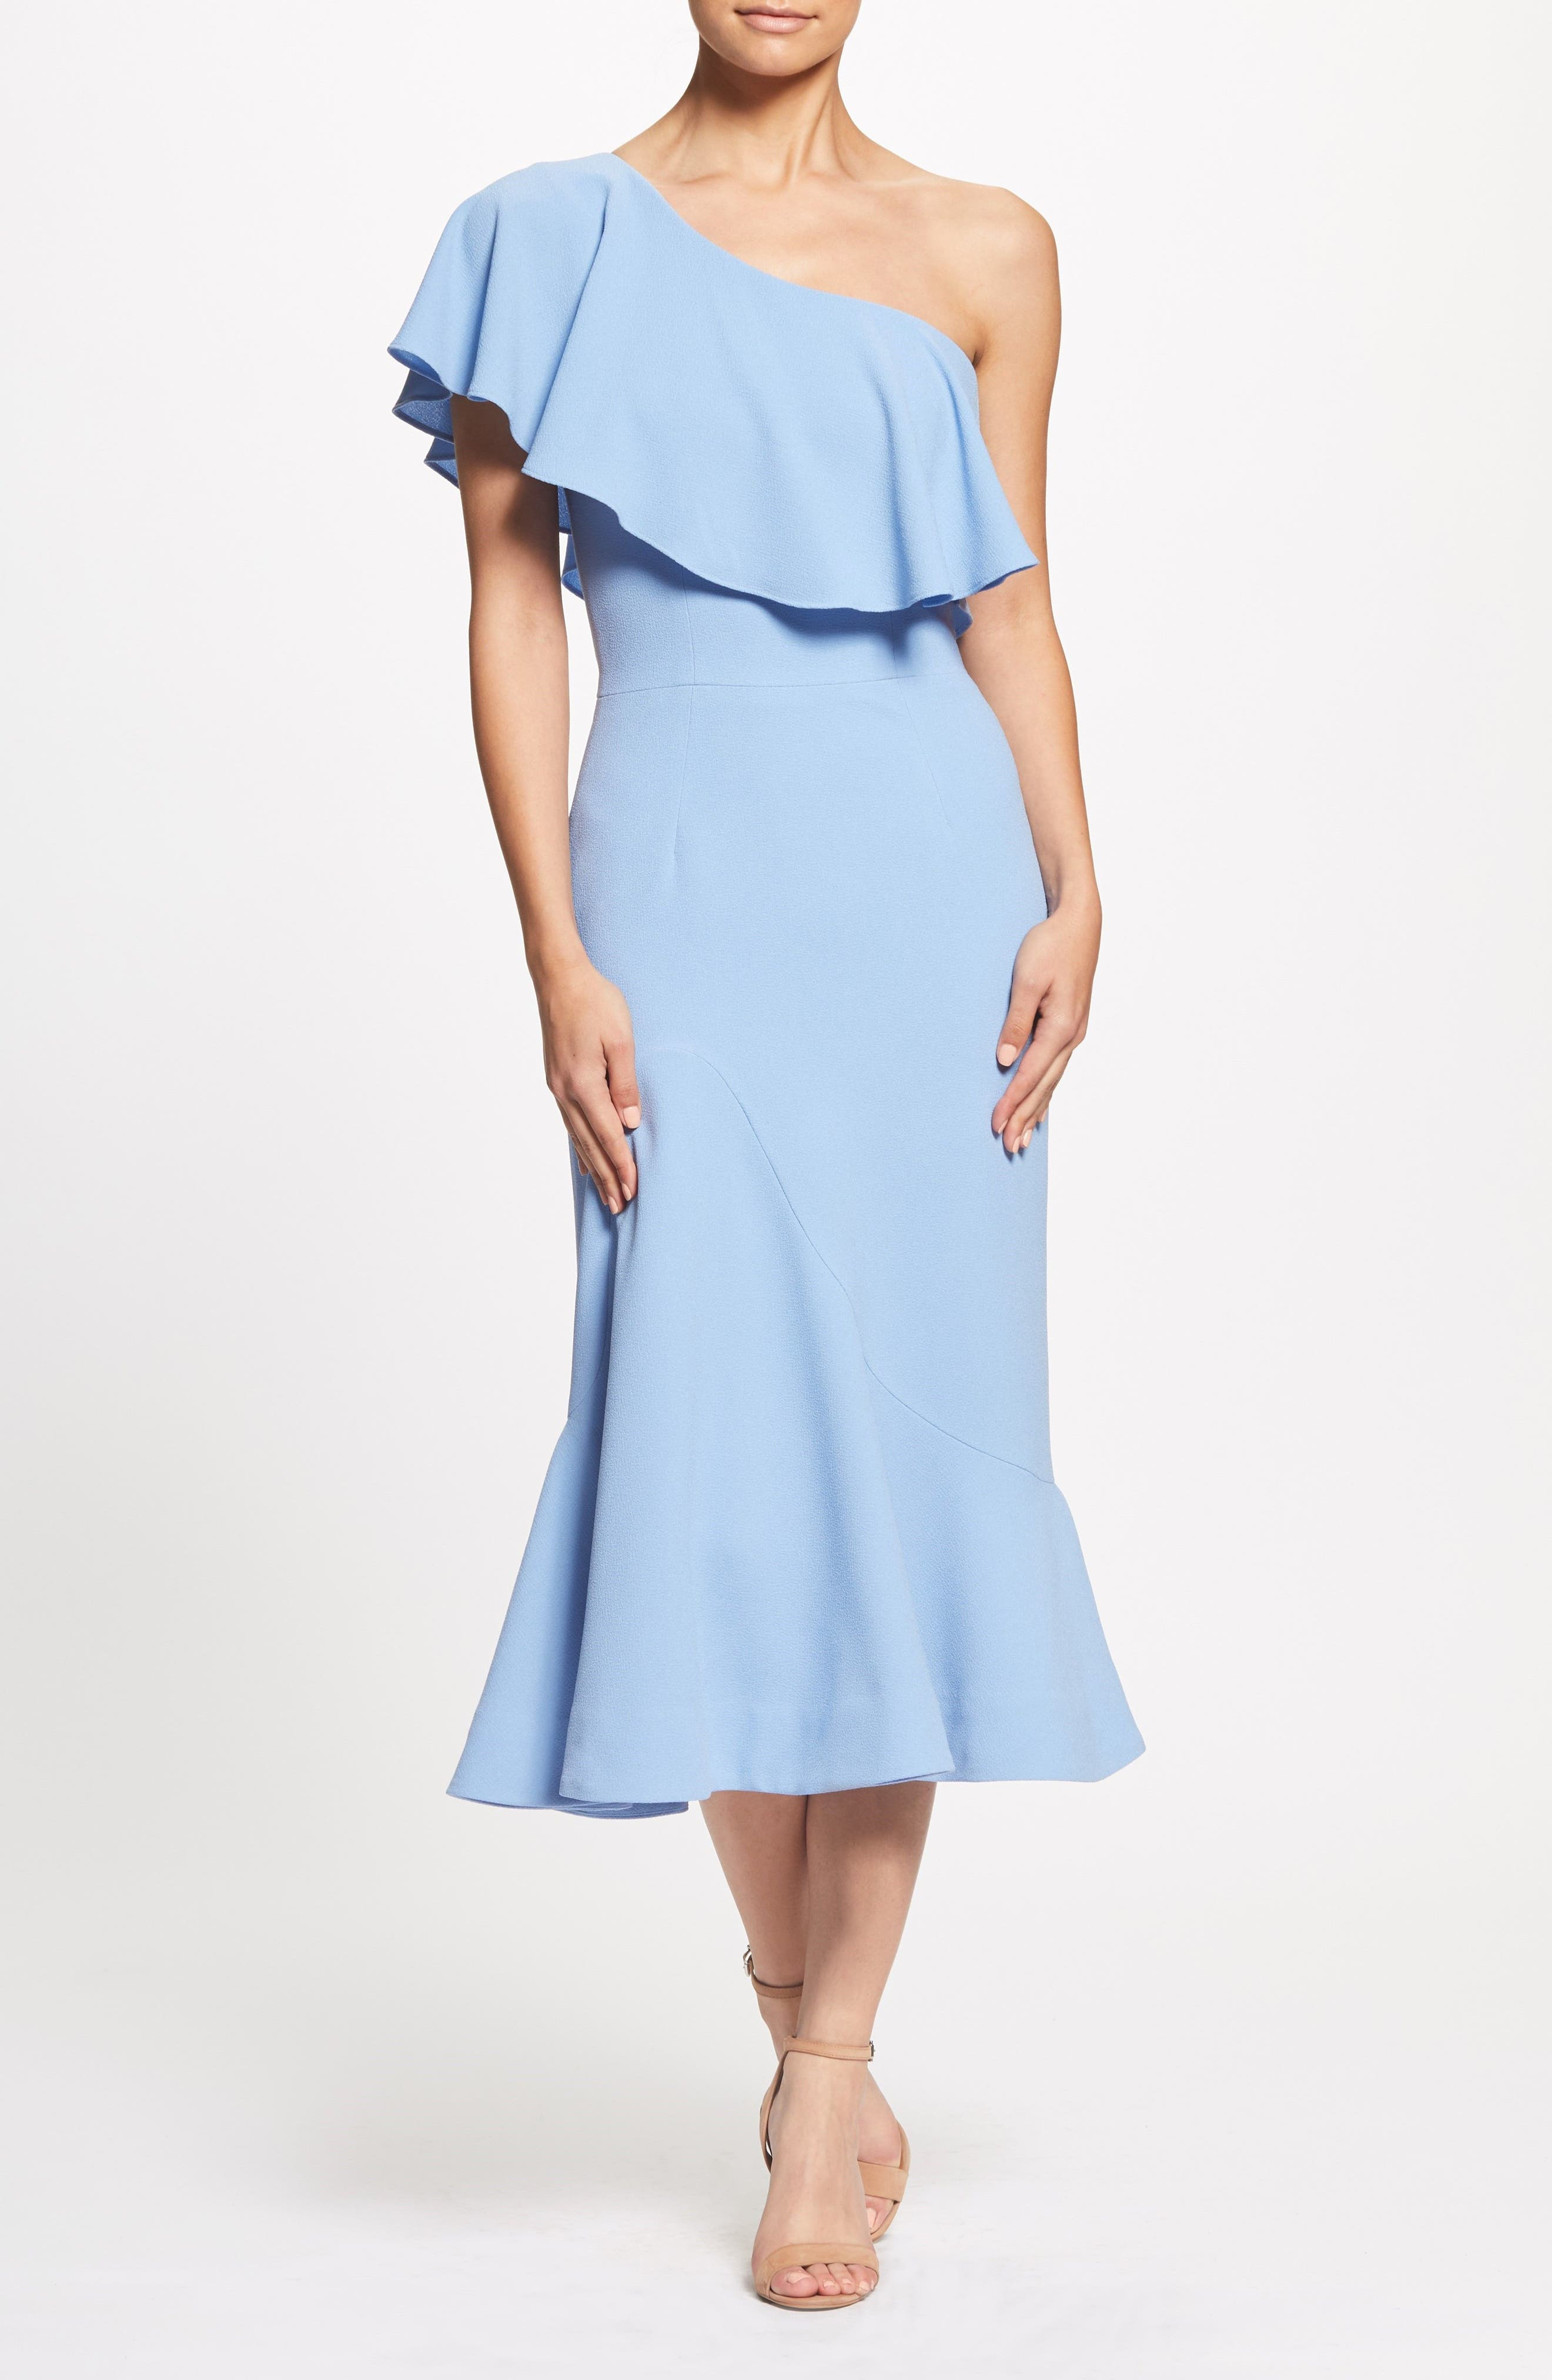 Raquel One-Shoulder Trumpet Dress,                             Alternate thumbnail 2, color,                             Ice Blue